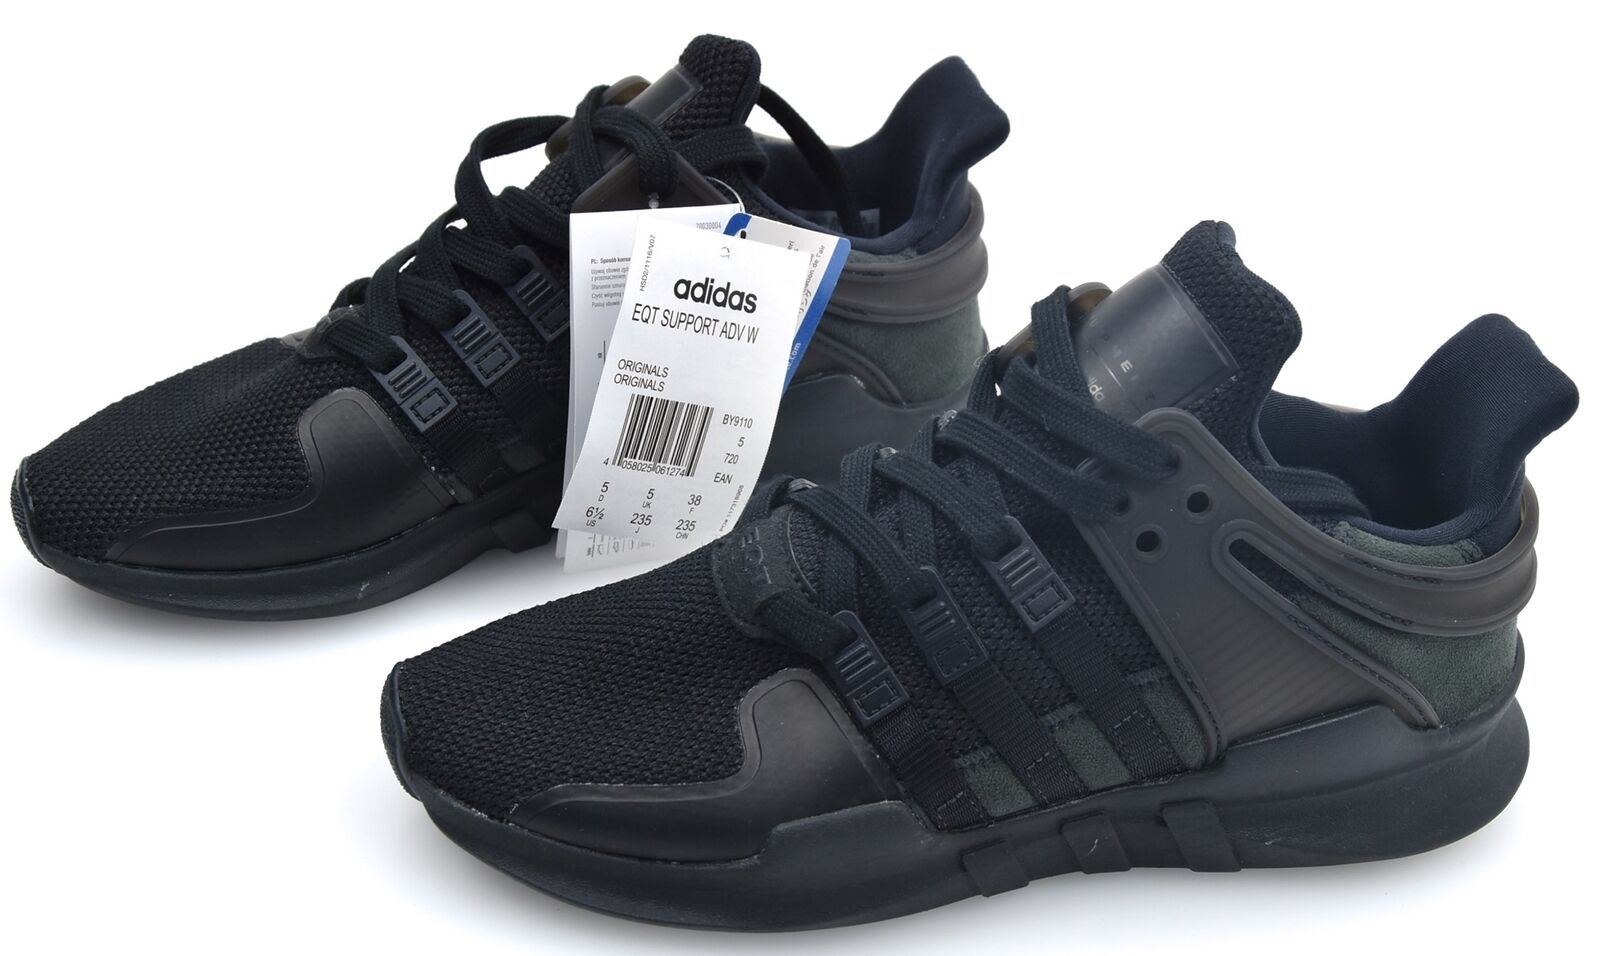 ADIDAS WOMAN SPORTS SNEAKER SHOES SYNTHETIC RUBBER CODE BY9110 EQT SUPPORT ADV W